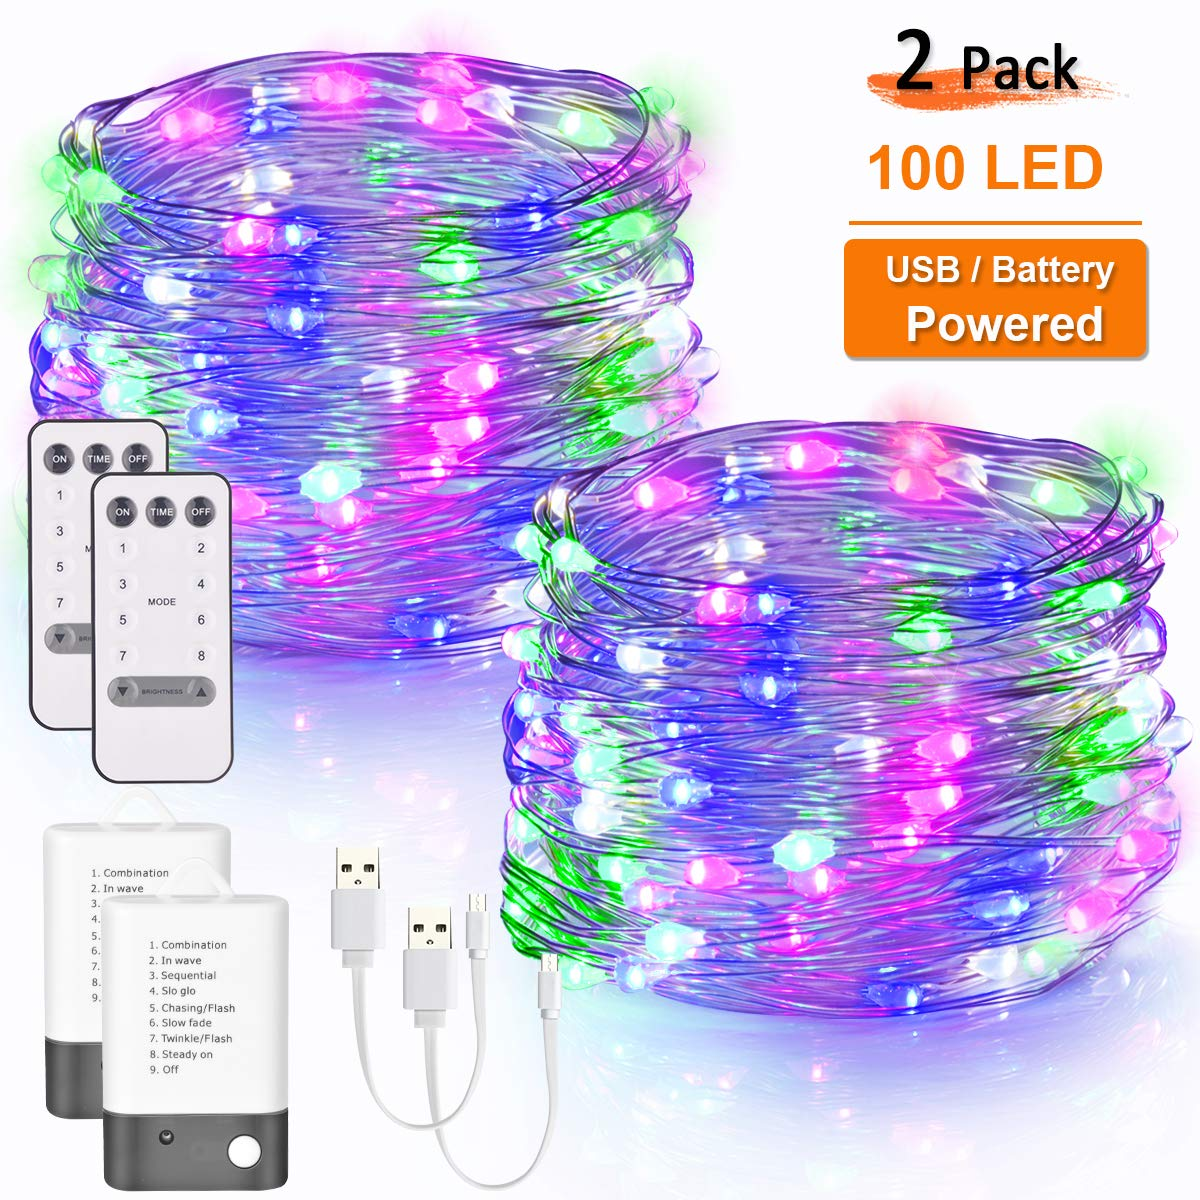 Areskey LED Fairy String Lights 2 Pack 33ft 100 LED USB and Battery Powered Waterproof 8 Modes Remote Control Copper Wire Firefly Lights for Christmas Halloween Holiday Wedding Party Multicolor